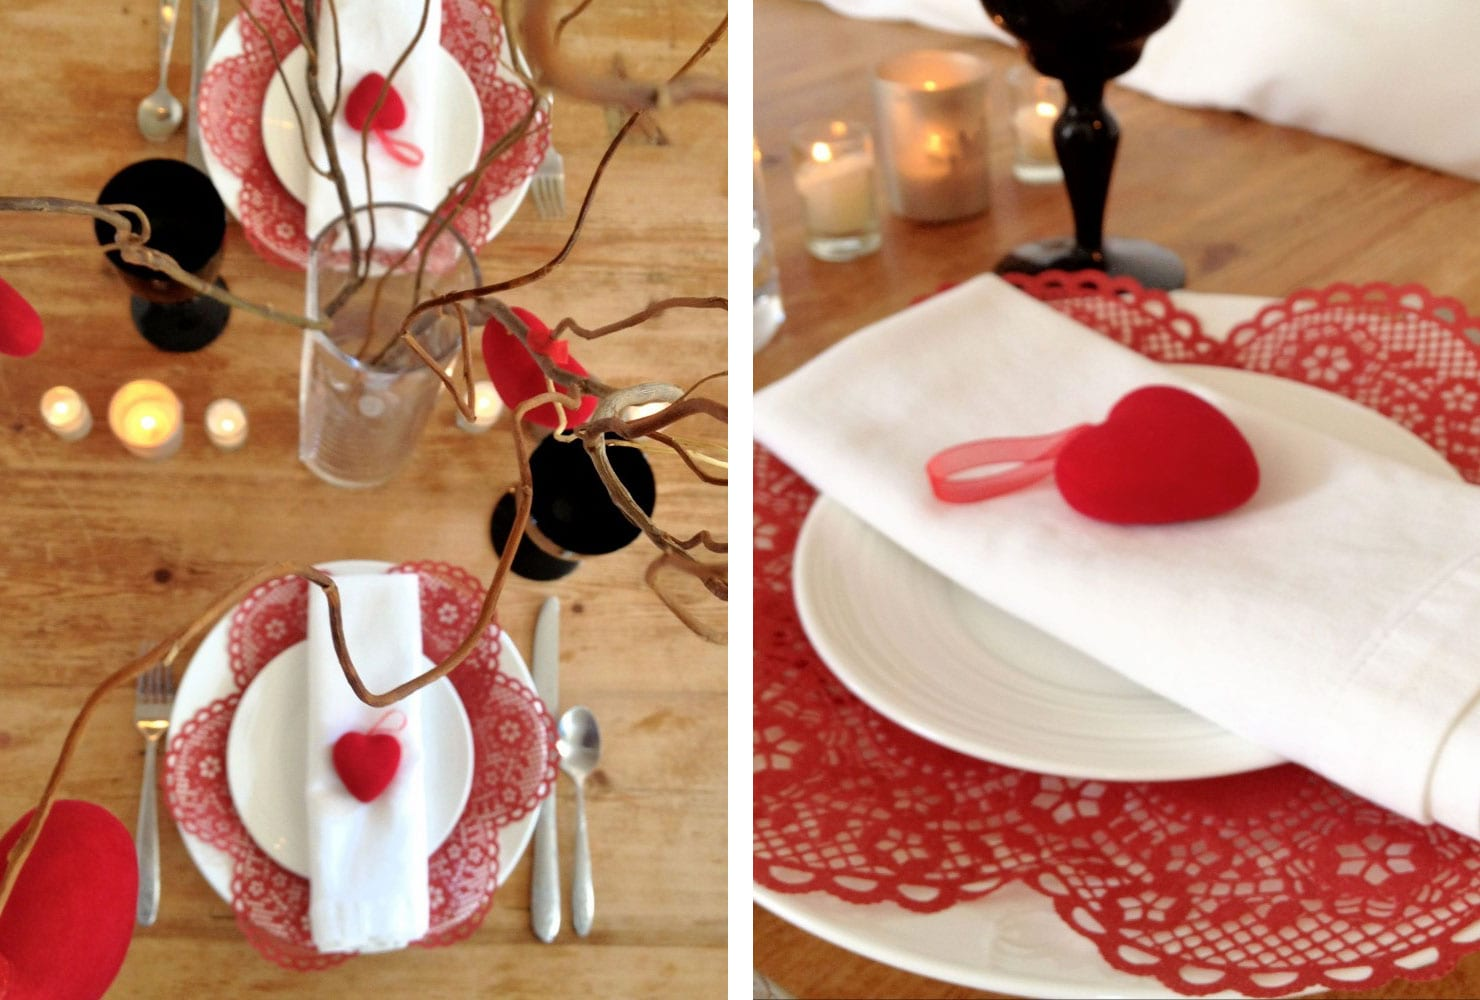 sweetheart table ideas for every season shutterfly valentine hearts accent your focus runner wooden with white plates and red heart accents target patio coffee narrow oak console